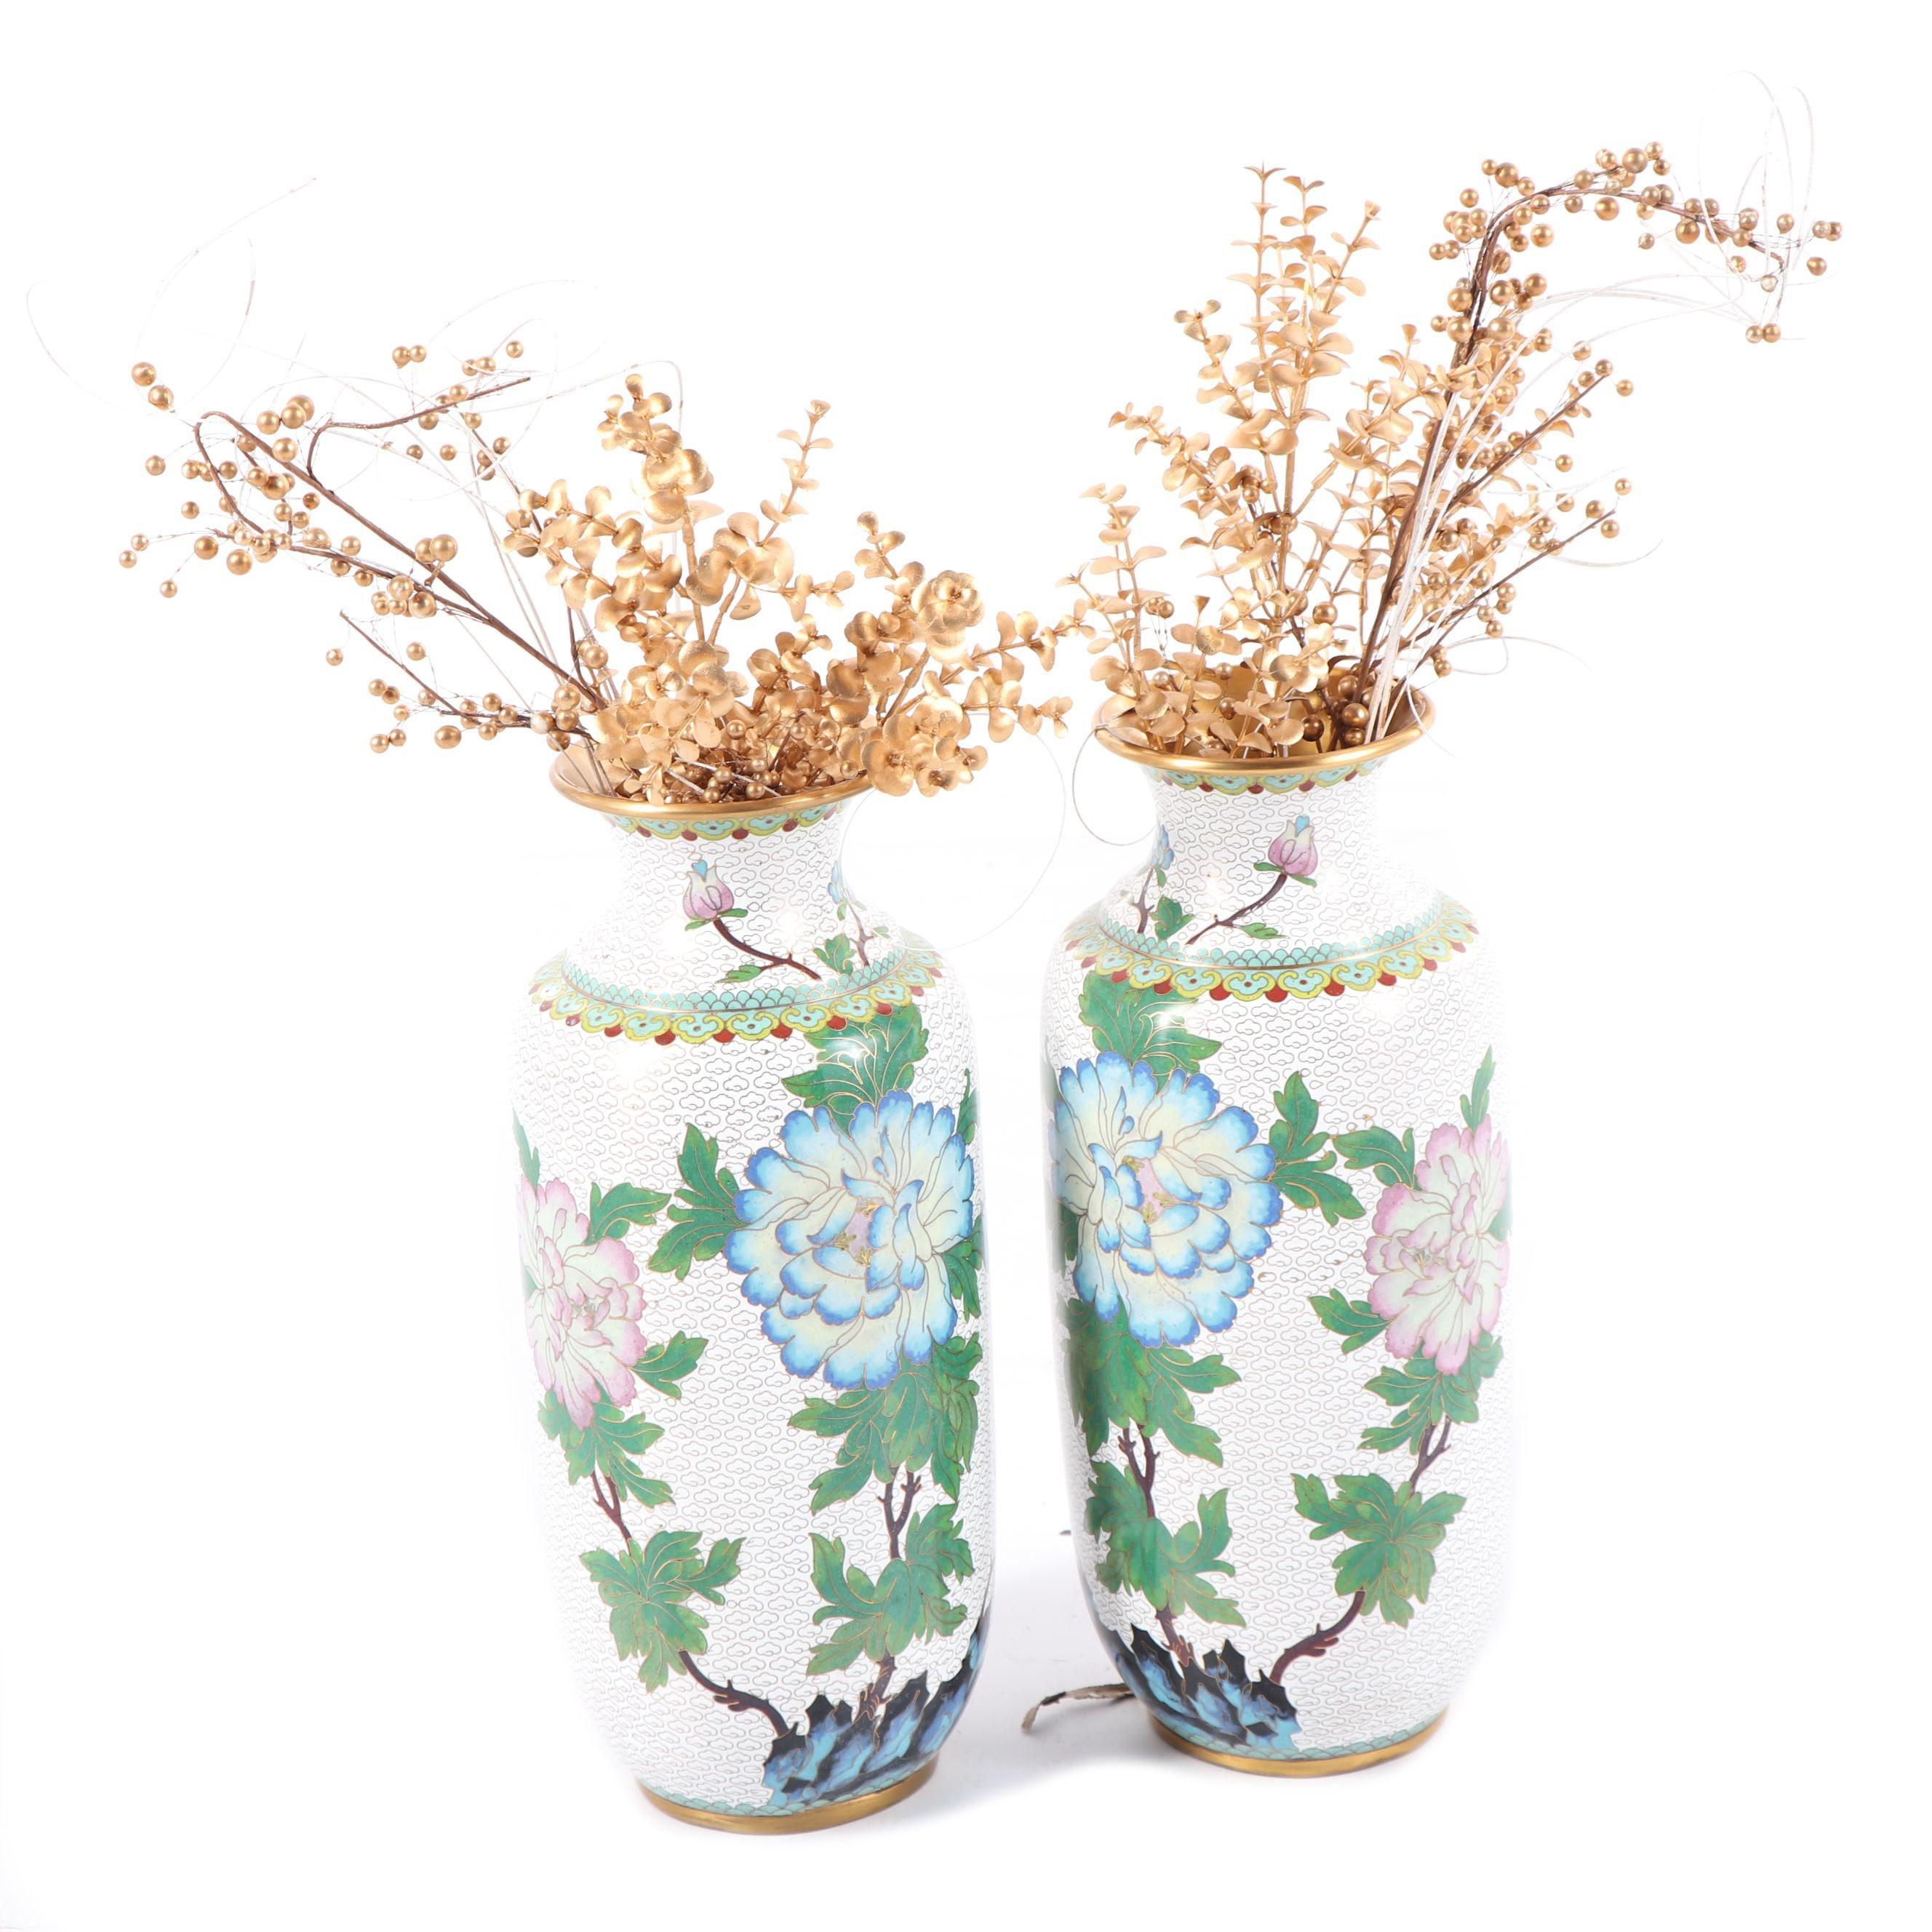 Chinese Cloisonné Peony Motif Vases with Faux Foliage